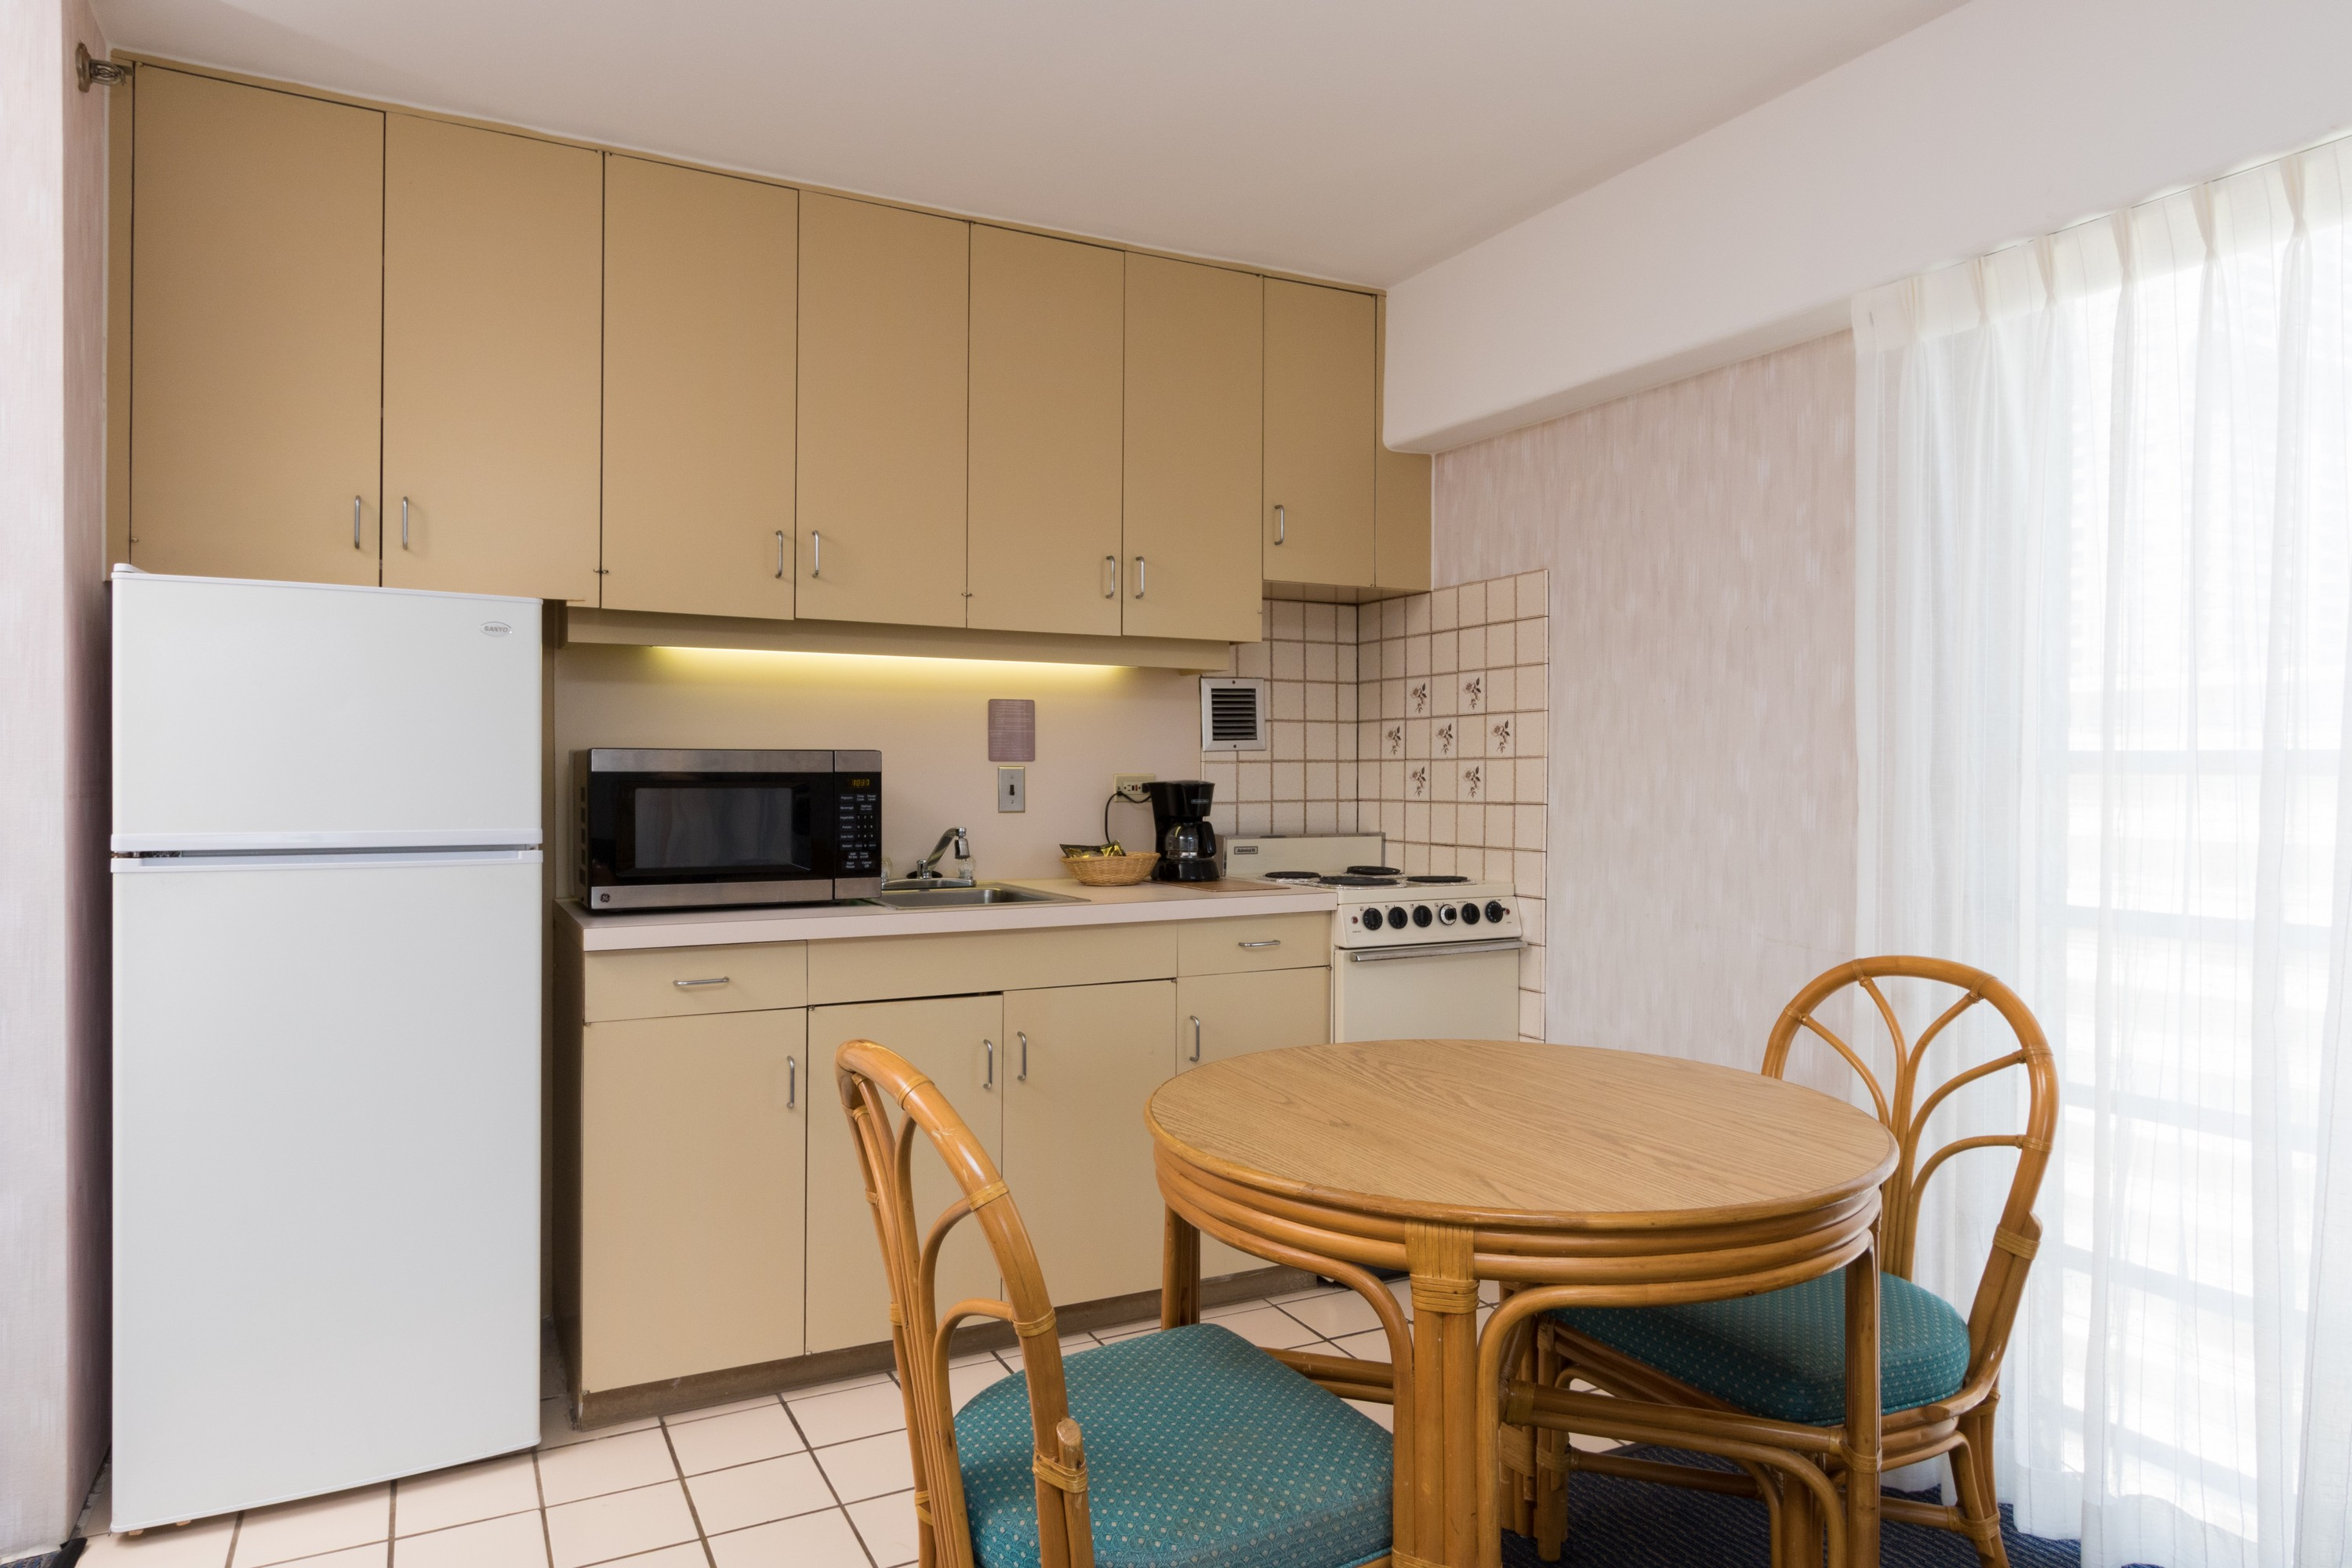 hotels with kitchens in waikiki bed bath and beyond kitchen mat accommodation studio rooms ilima hotel honolulu